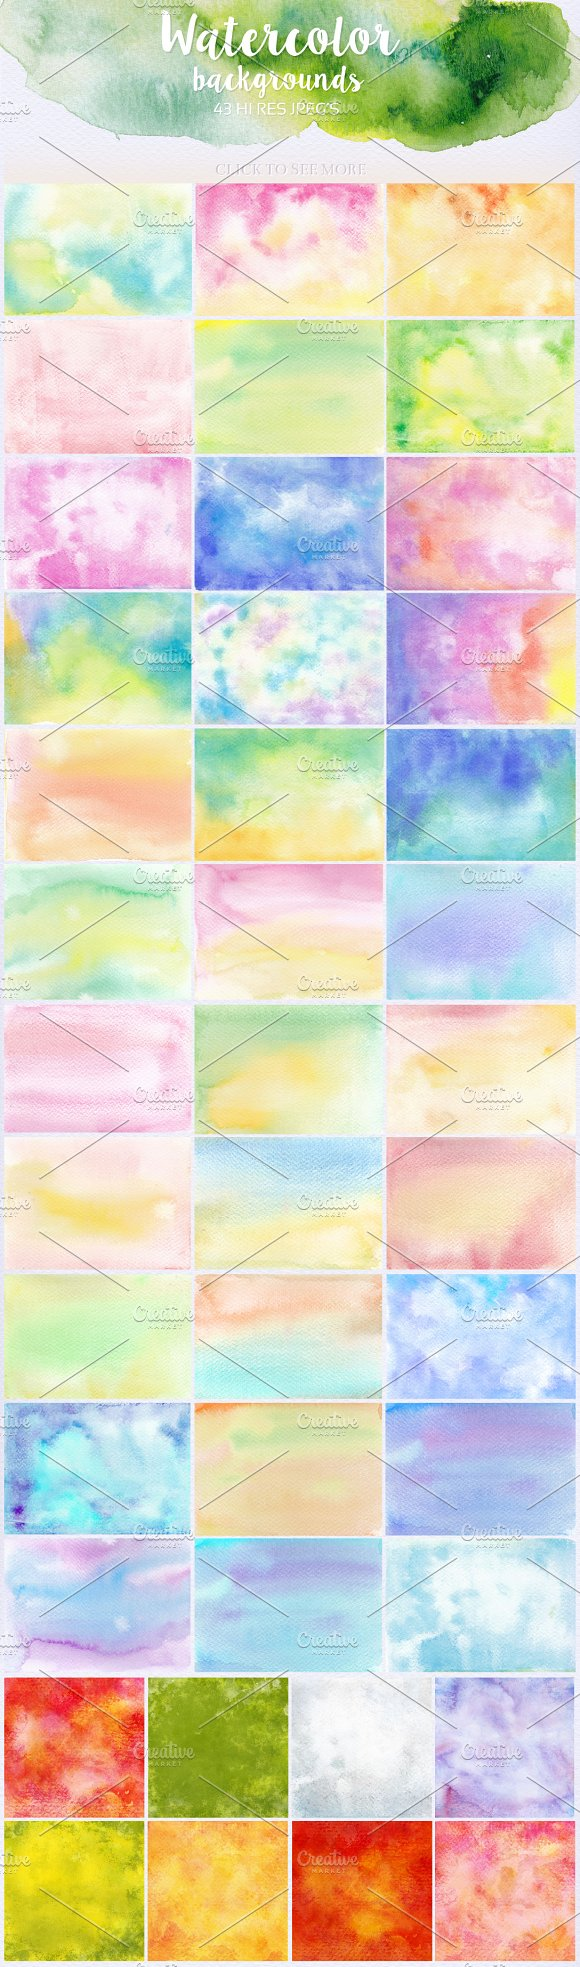 Watercolor Textures Bundle in Textures - product preview 4